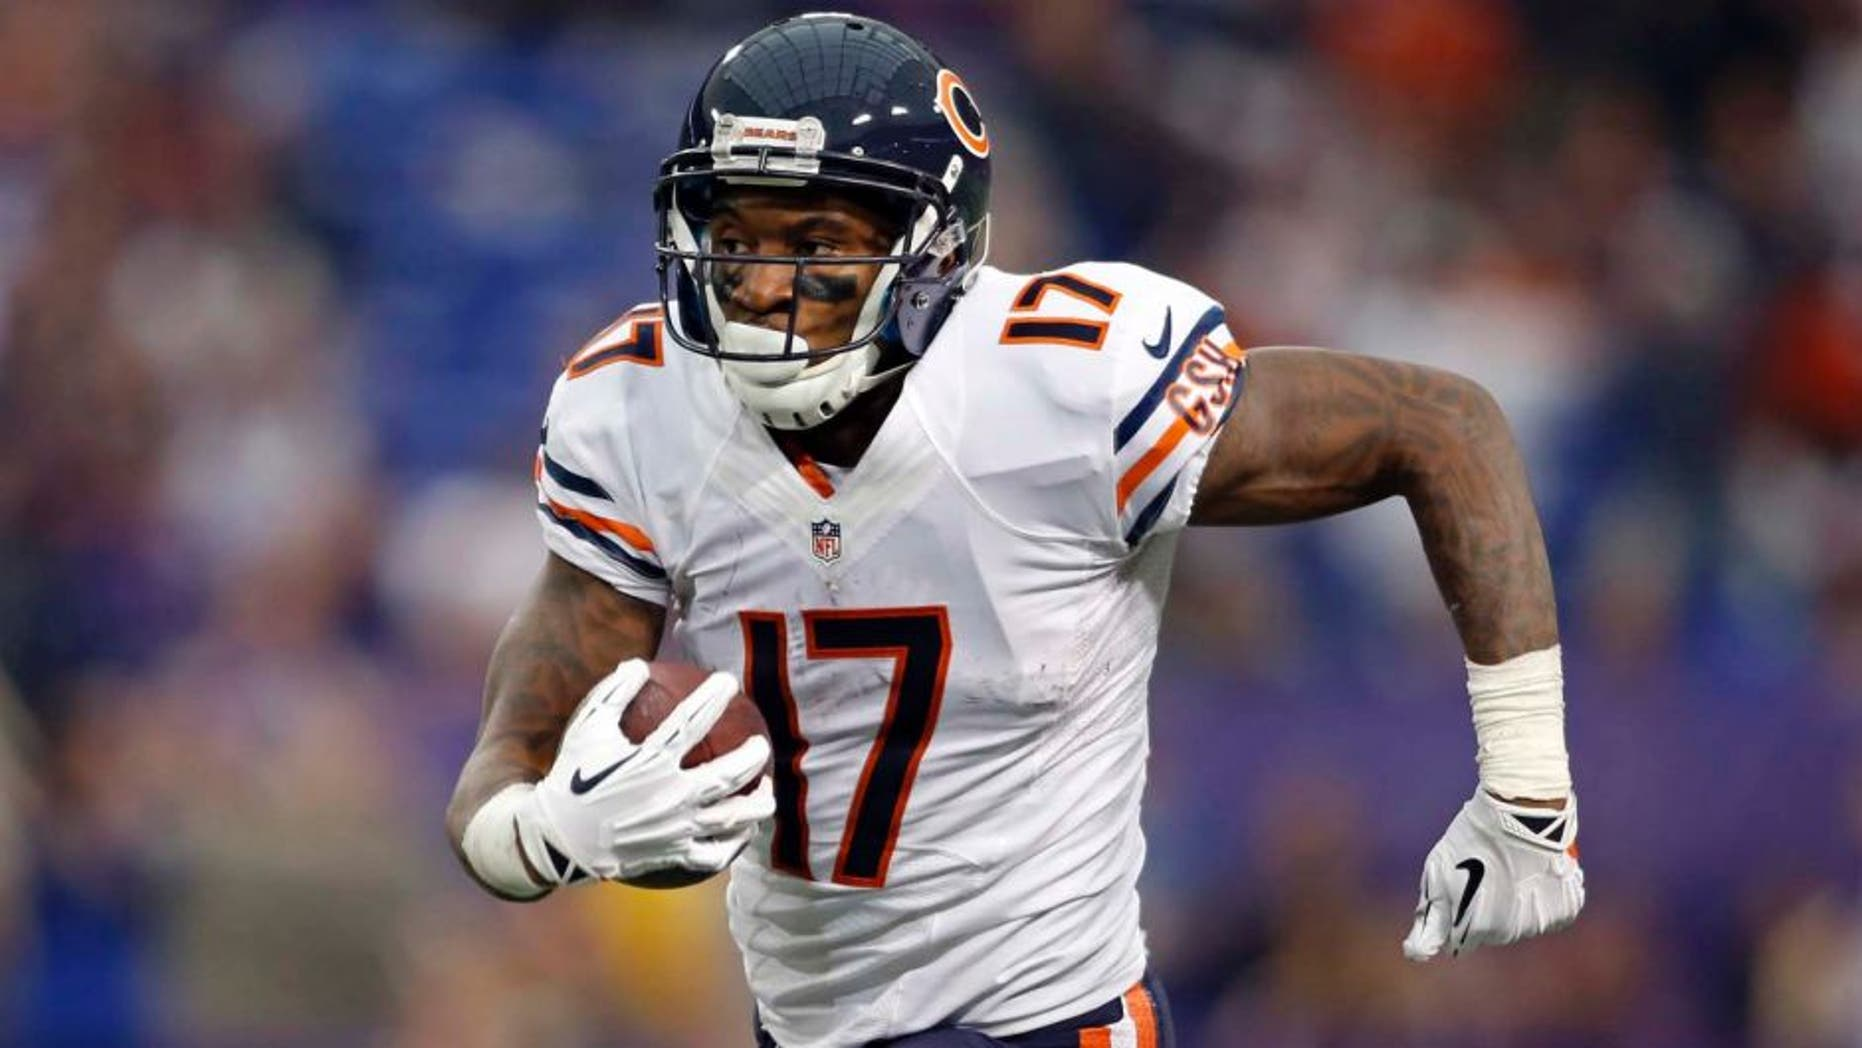 Dec 1, 2013; Minneapolis, MN, USA; Chicago Bears wide receiver Alshon Jeffery (17) catches a pass against the Minnesota Vikings for an 80 yard touchdown catch in the third quarter at Mall of America Field at H.H.H. Metrodome. Vikings win 23-20 in overtime.